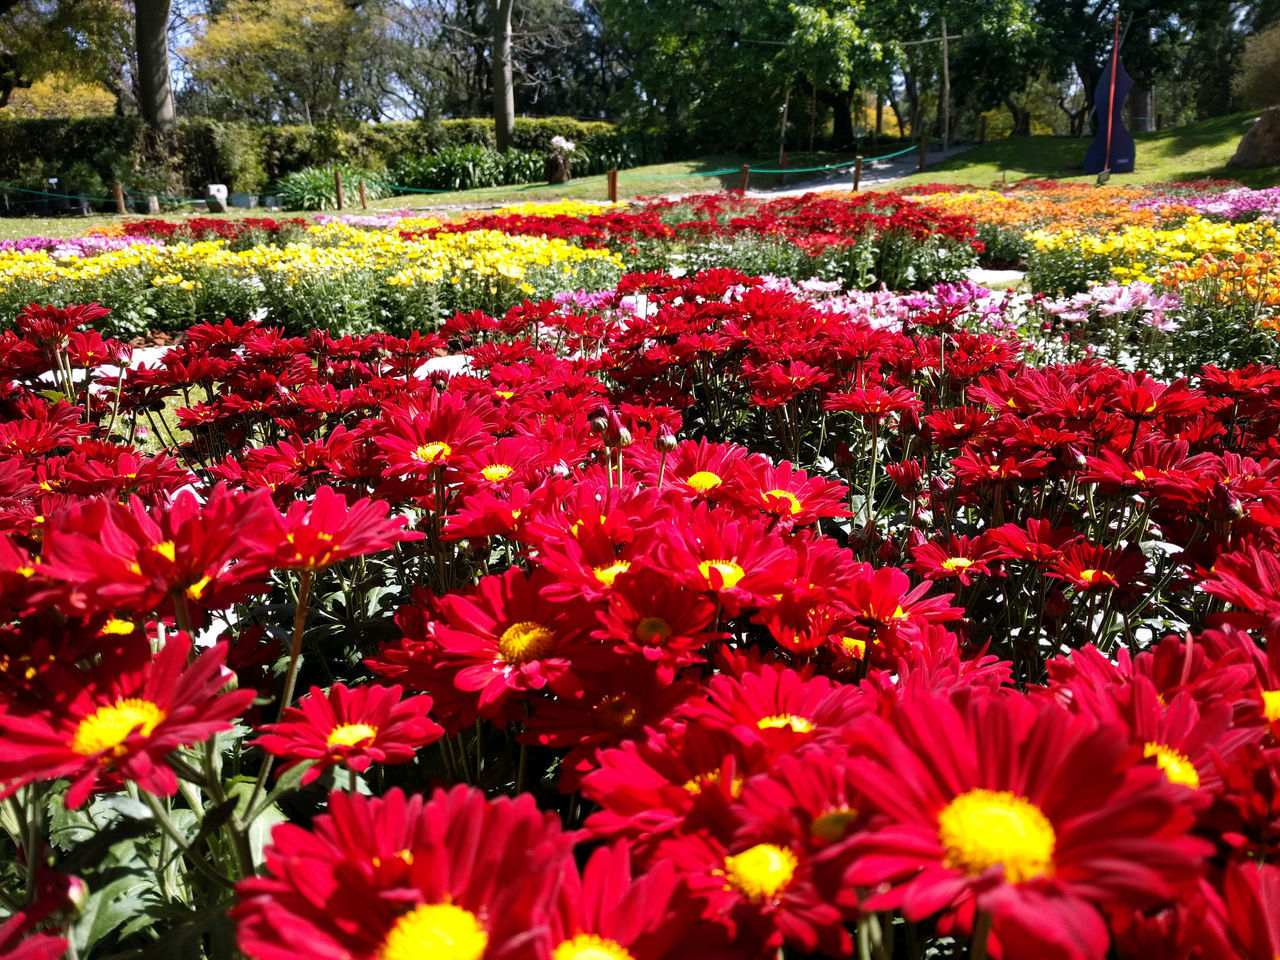 CLOSE-UP OF COLORFUL FLOWERS IN PARK